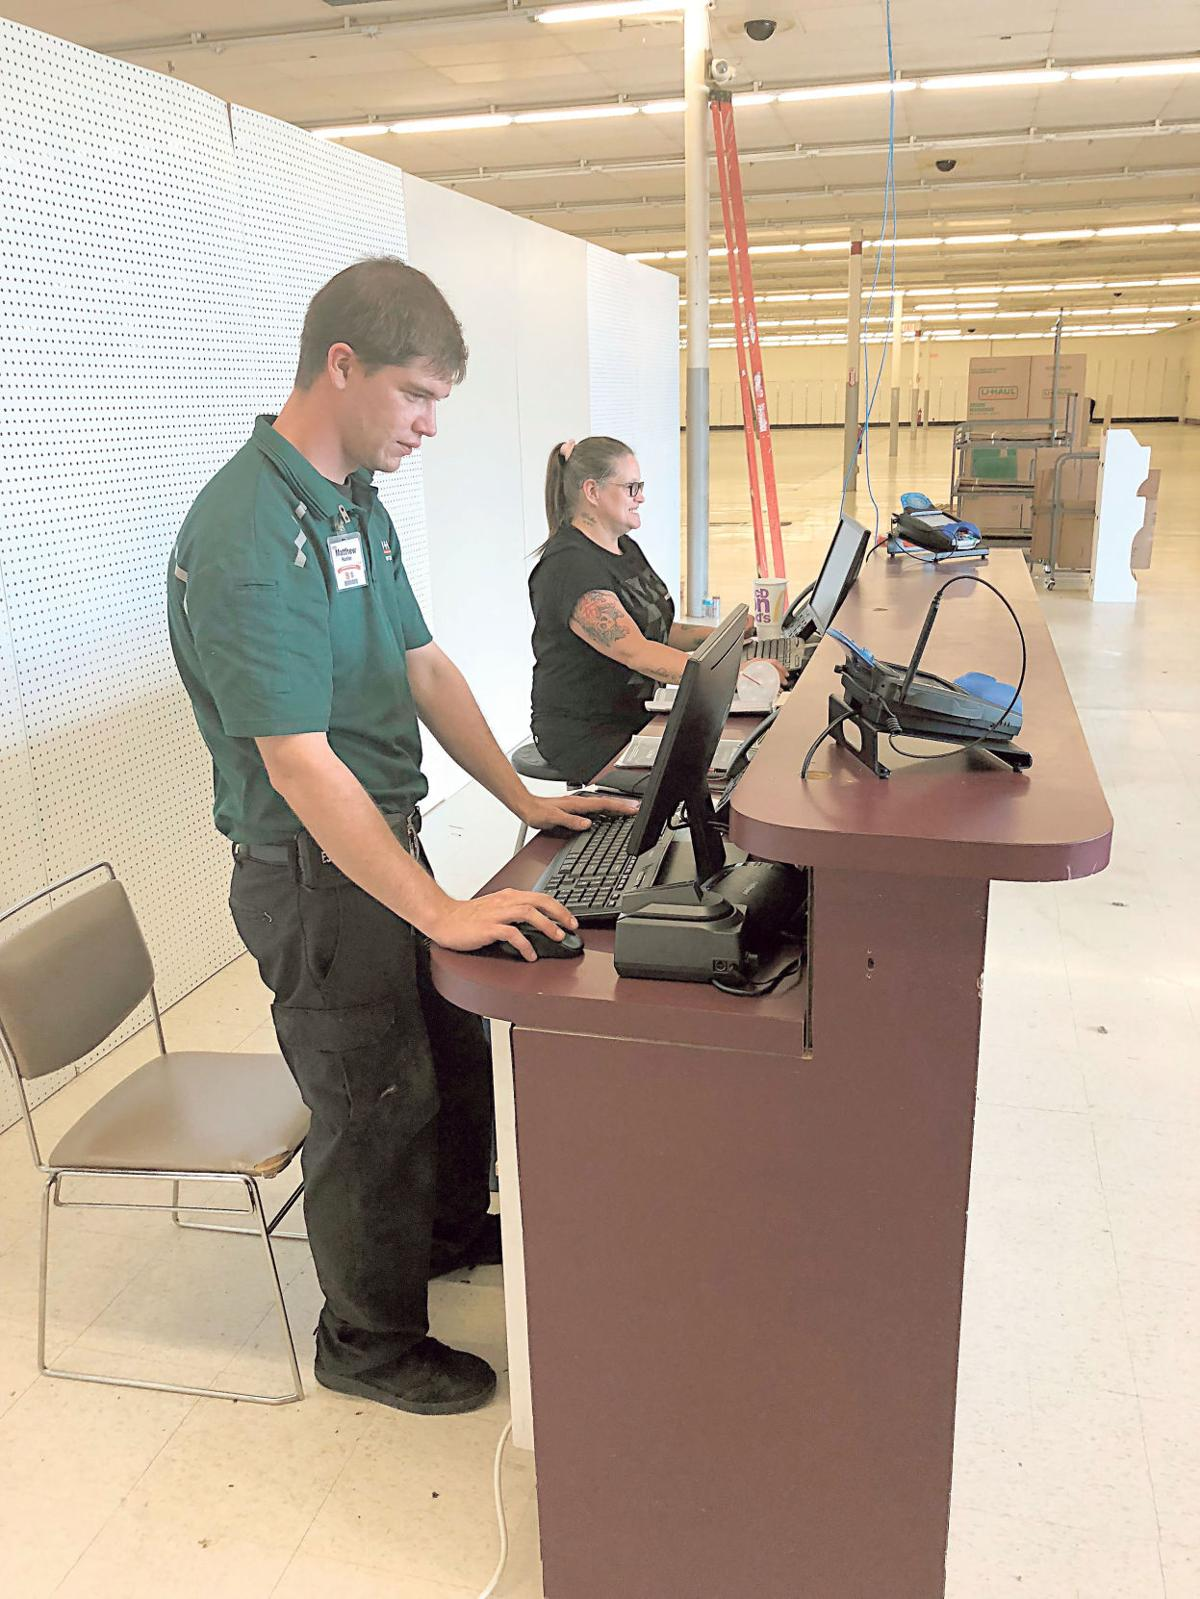 New U Haul Station In Old Kmart Building Represents Changing